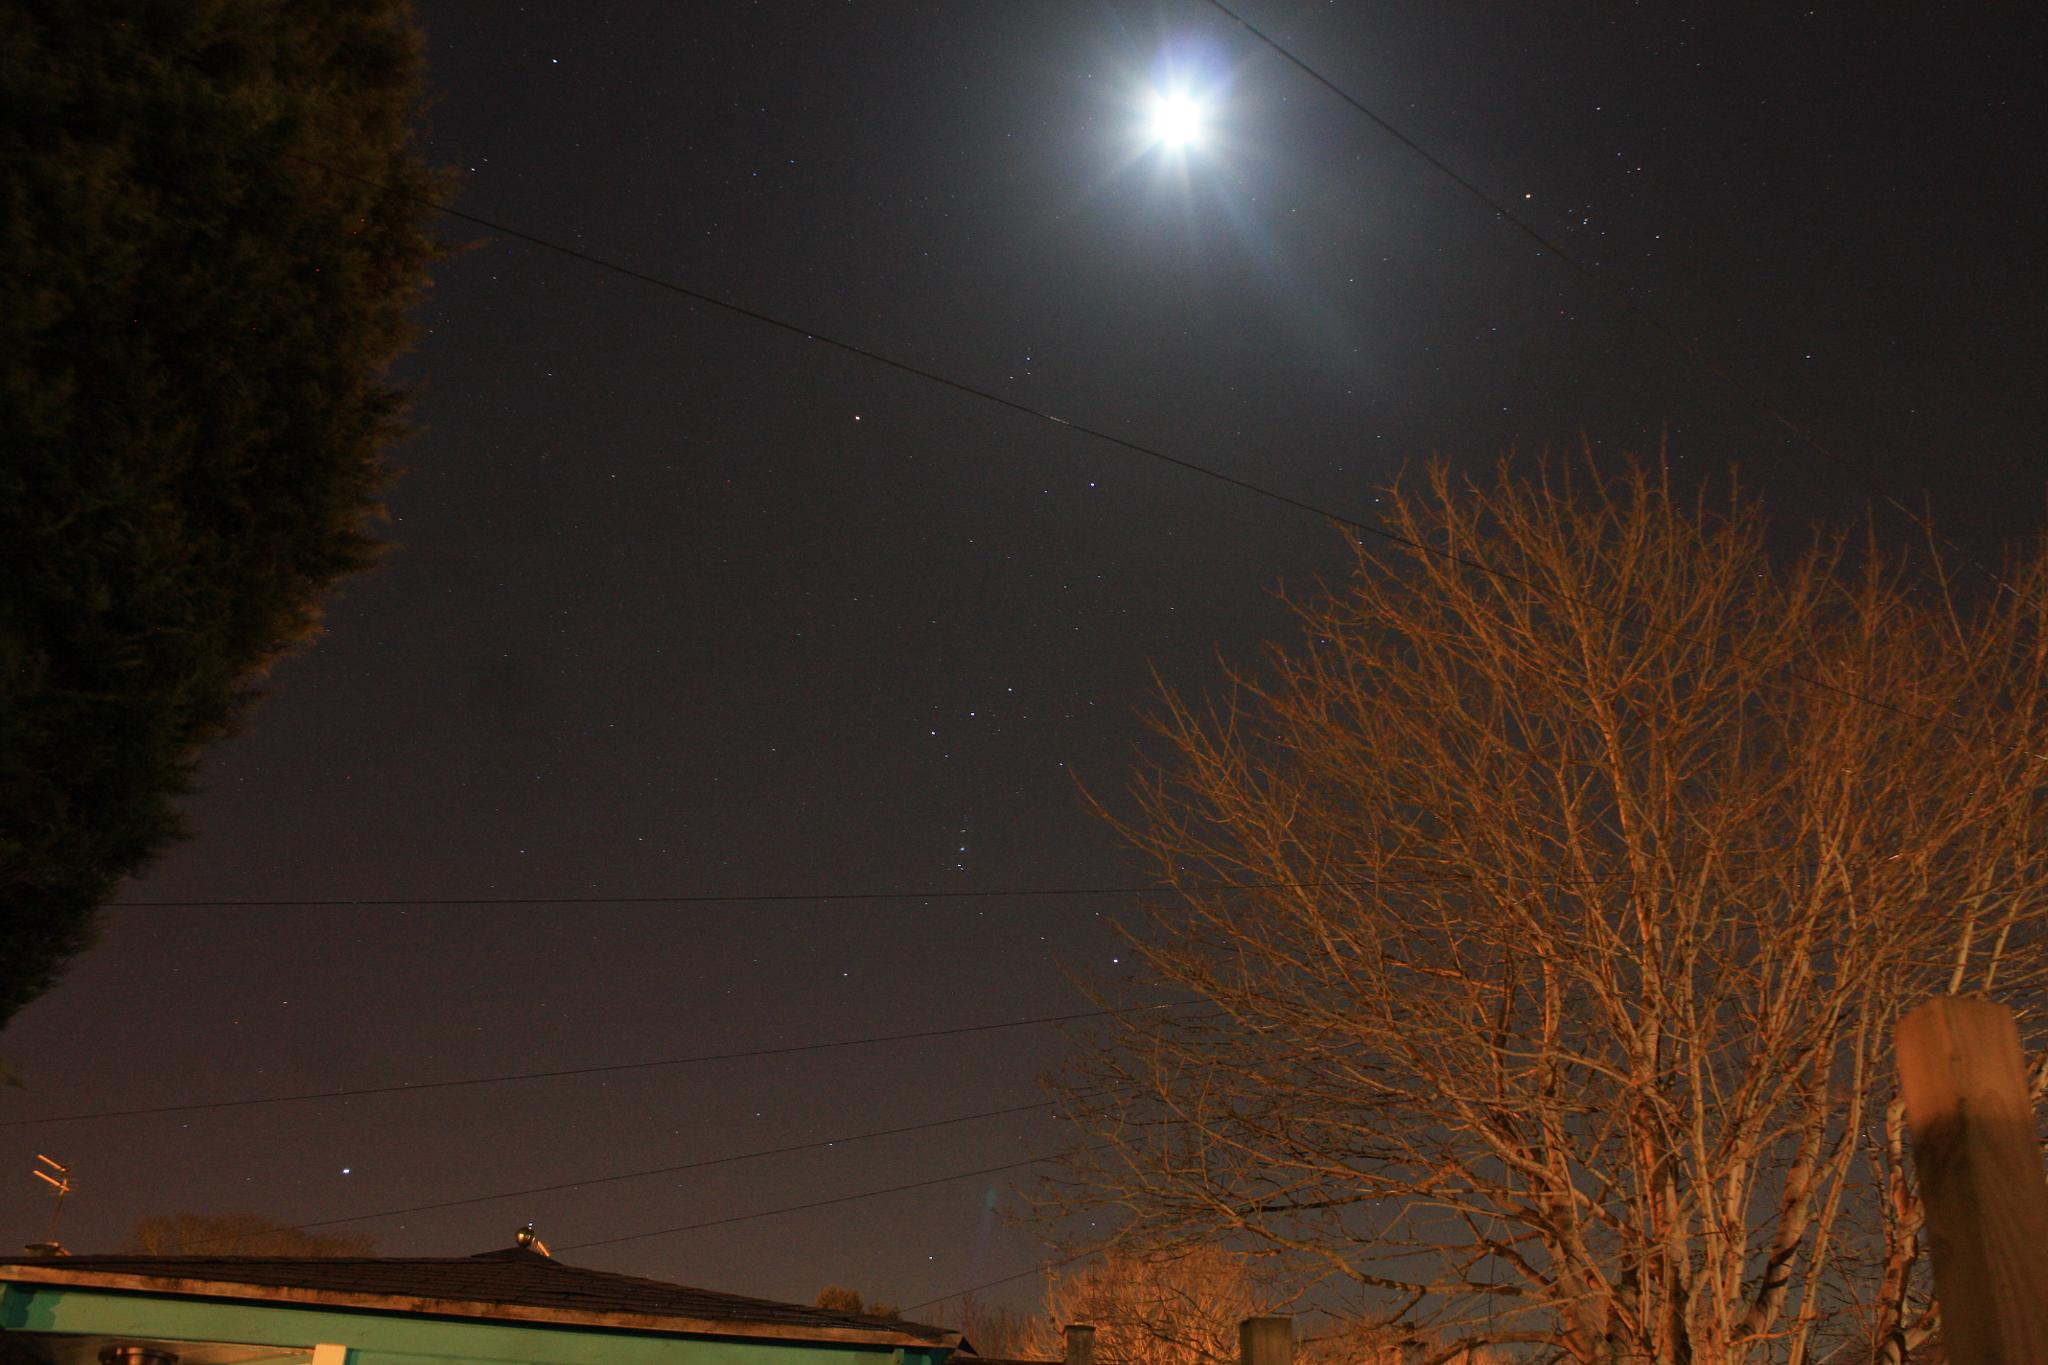 The Moon & the Tree by smithlinton